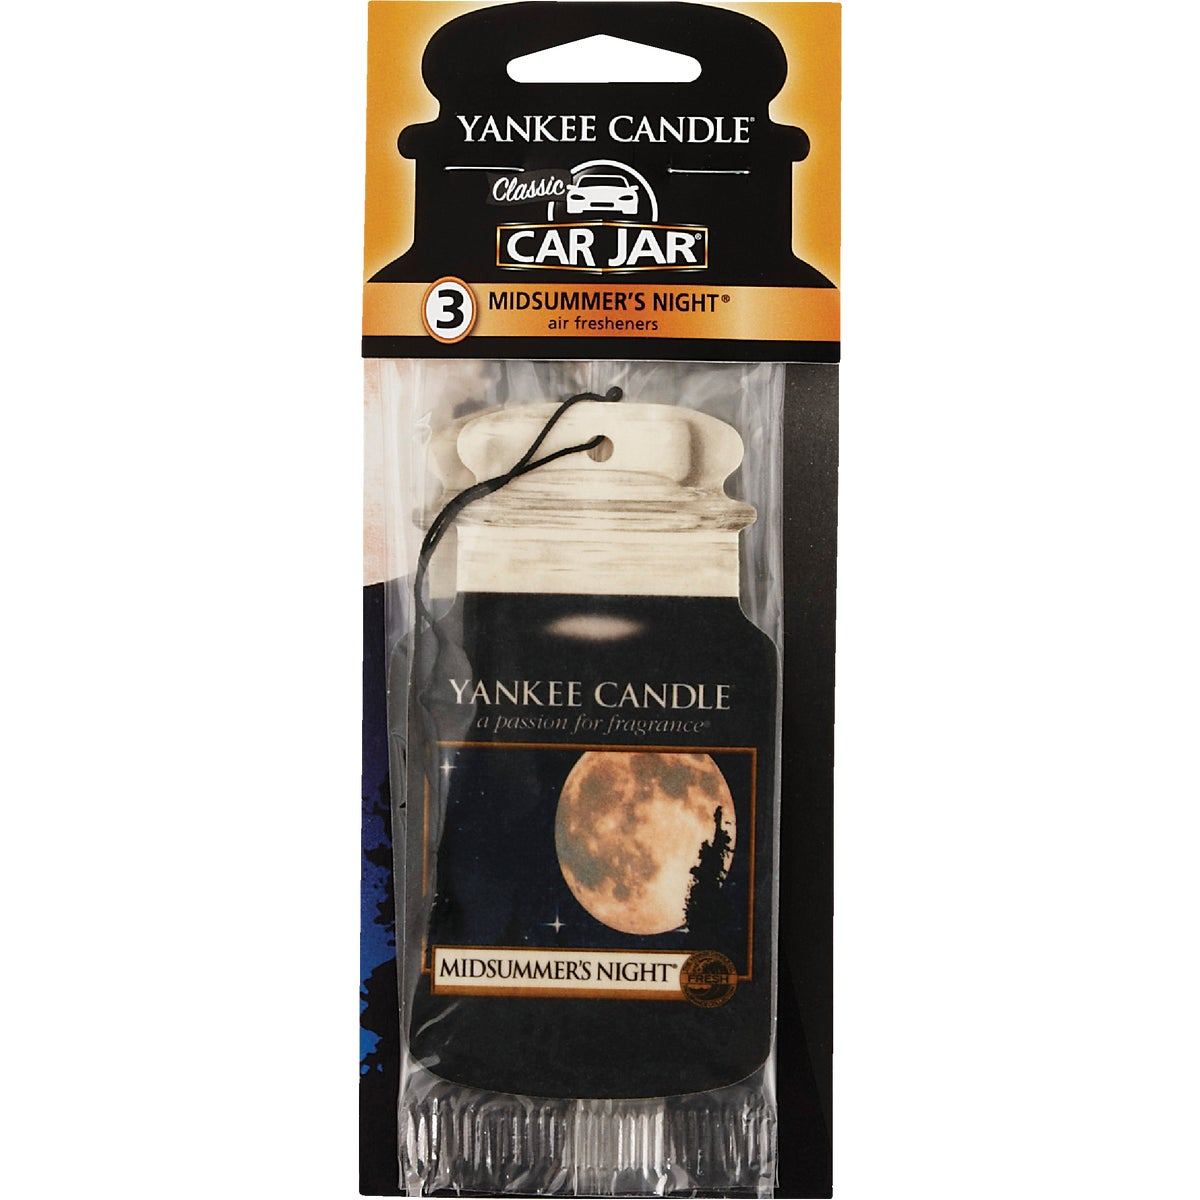 MIDSUMNITE CAR FRESHENER - 1114285 by Yankee Candle Co